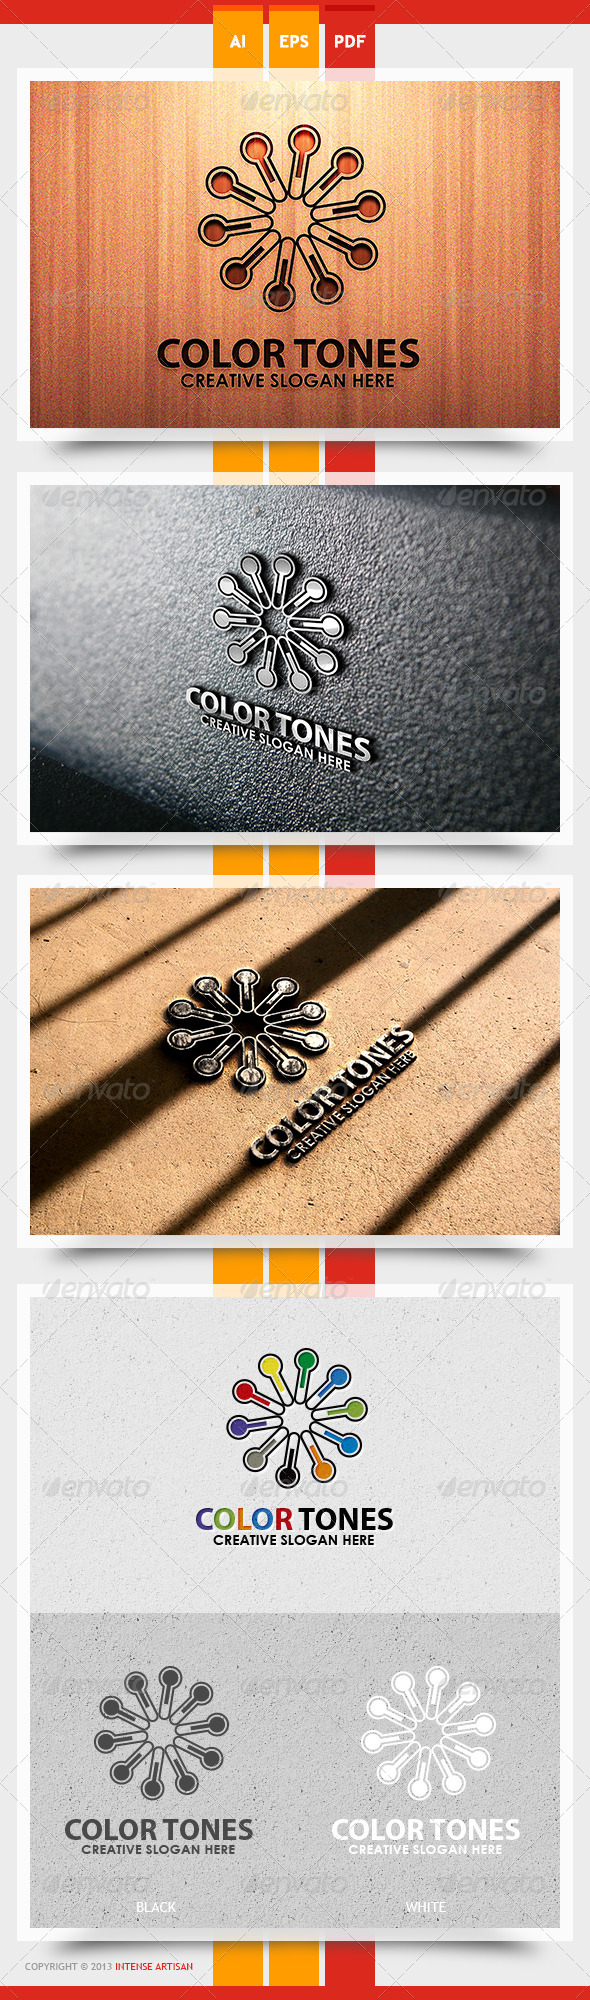 Color Tones Logo Template - Objects Logo Templates